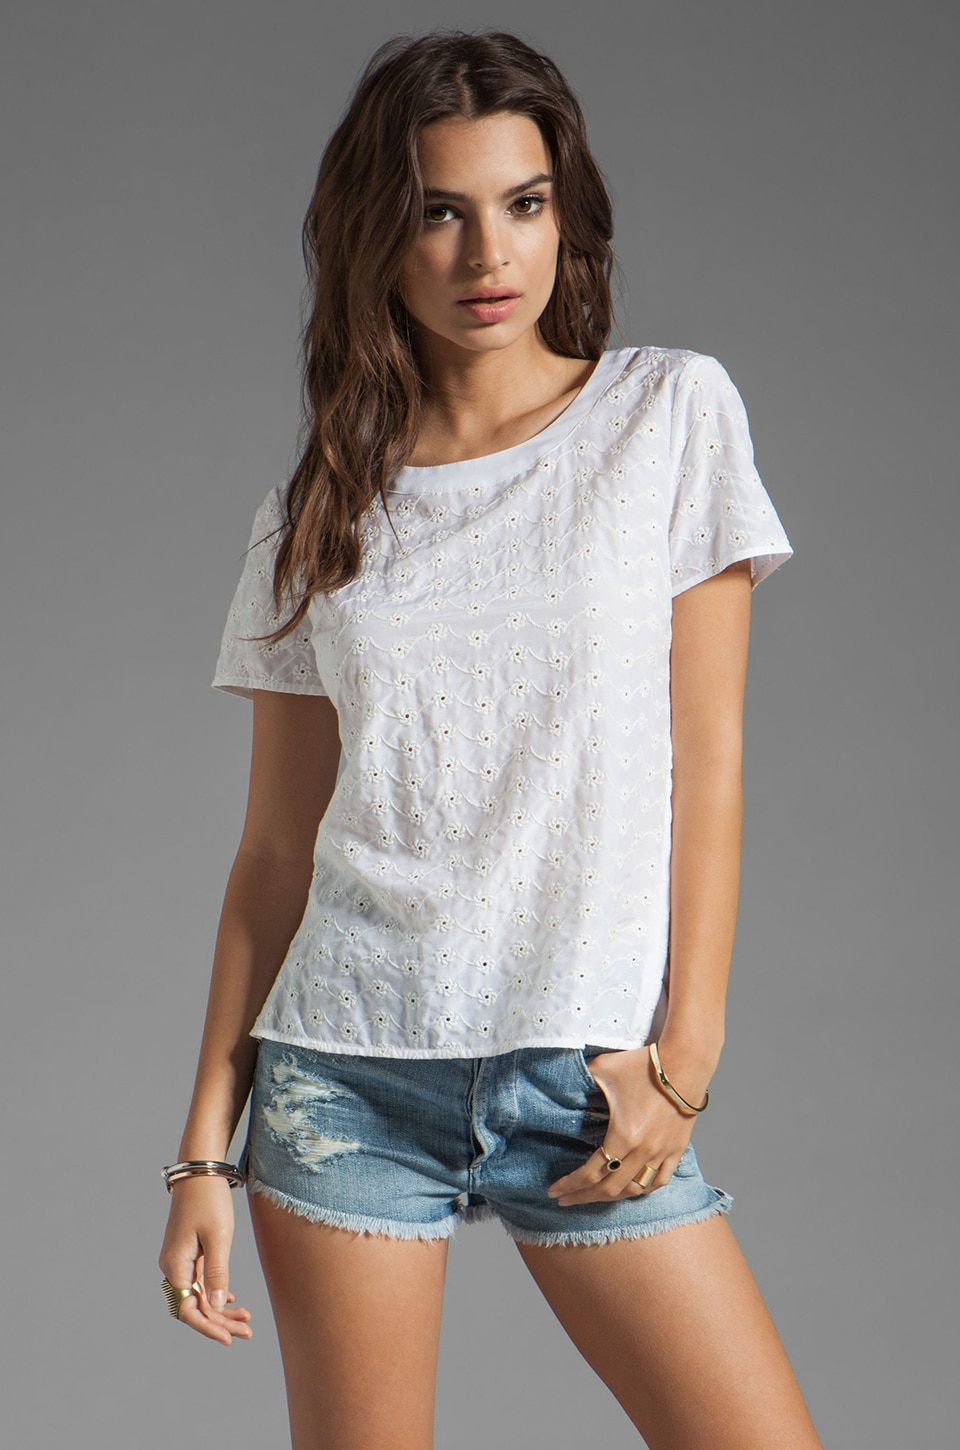 Marc by Marc Jacobs Rosie Eyelet Top in Wicken White Multi